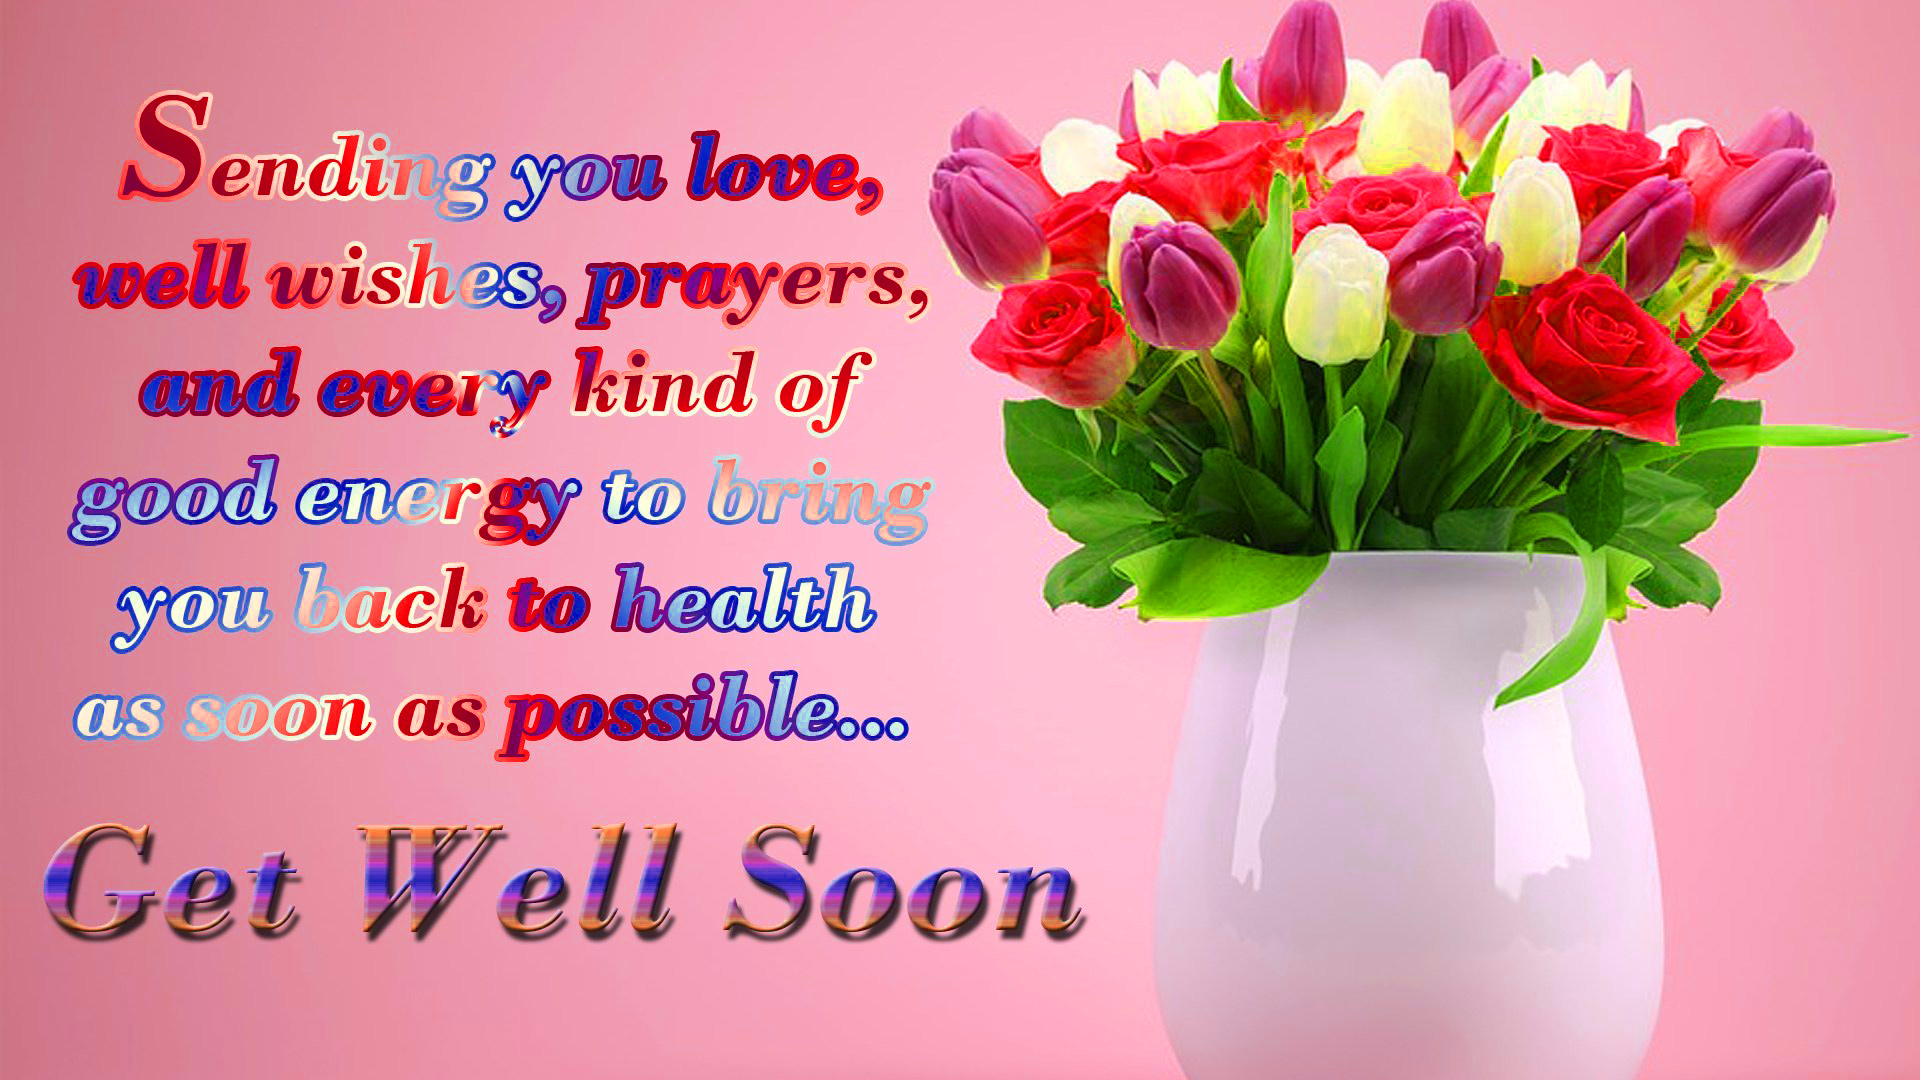 Get Well Soon Images Wallpaper For Whatsapp Good Afternoon With Flowers 553822 Hd Wallpaper Backgrounds Download